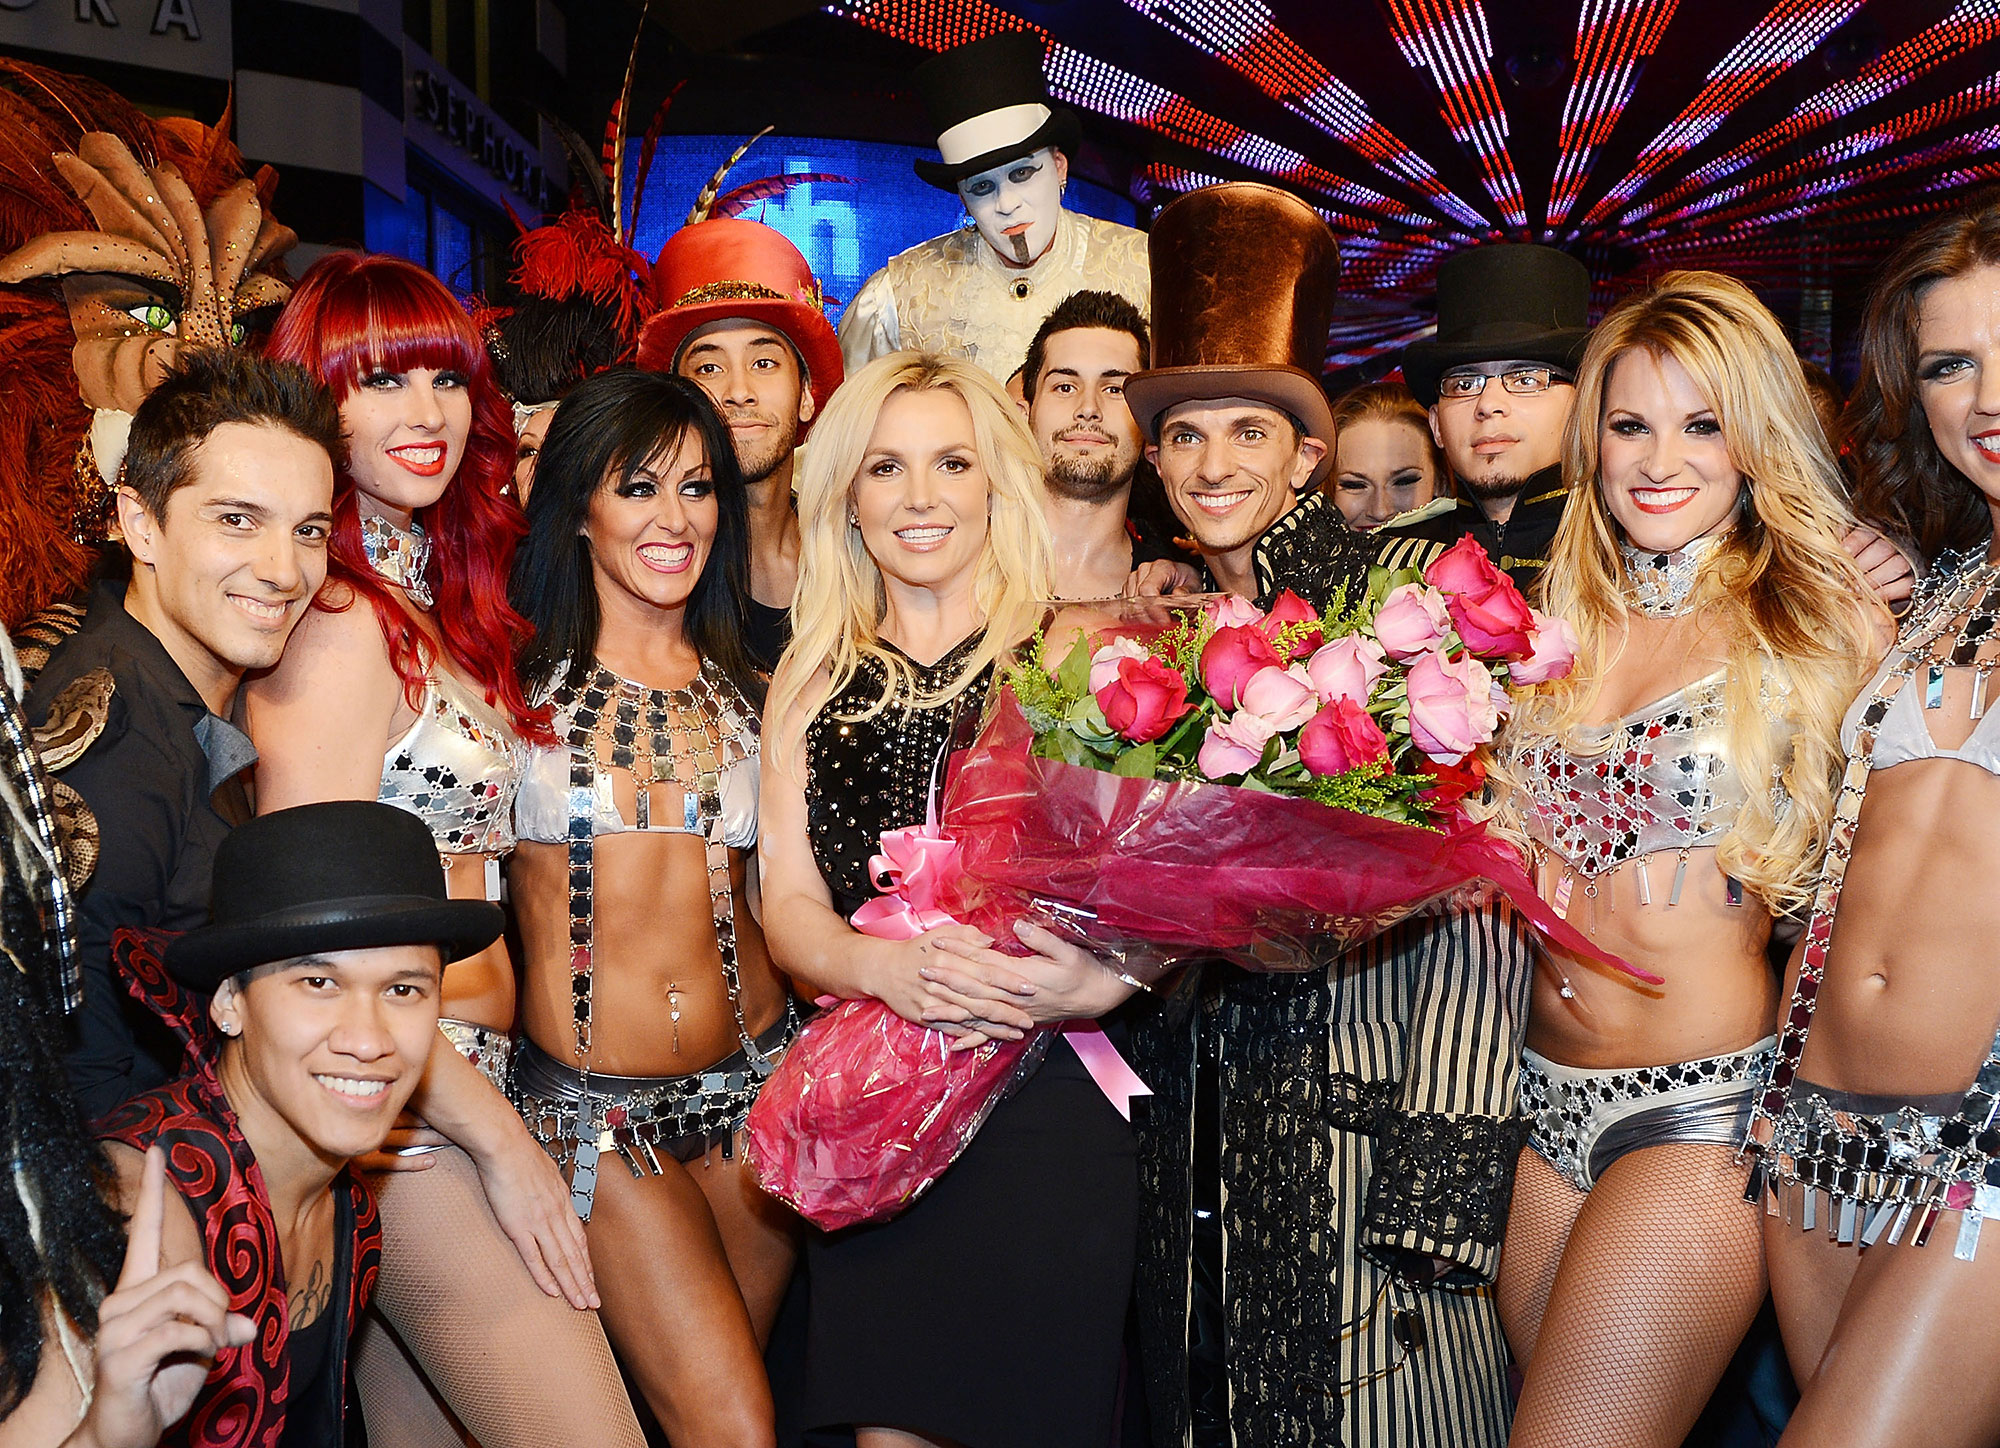 Britney Spears' Ups and Downs gallery - Following the release of her seventh and eighth studio albums, Femme Fatale and Britney Jean , respectively, Spears announced she had landed a Las Vegas residency. The show, titled Britney: Piece of Me , debuted at Planet Hollywood in December 2013.